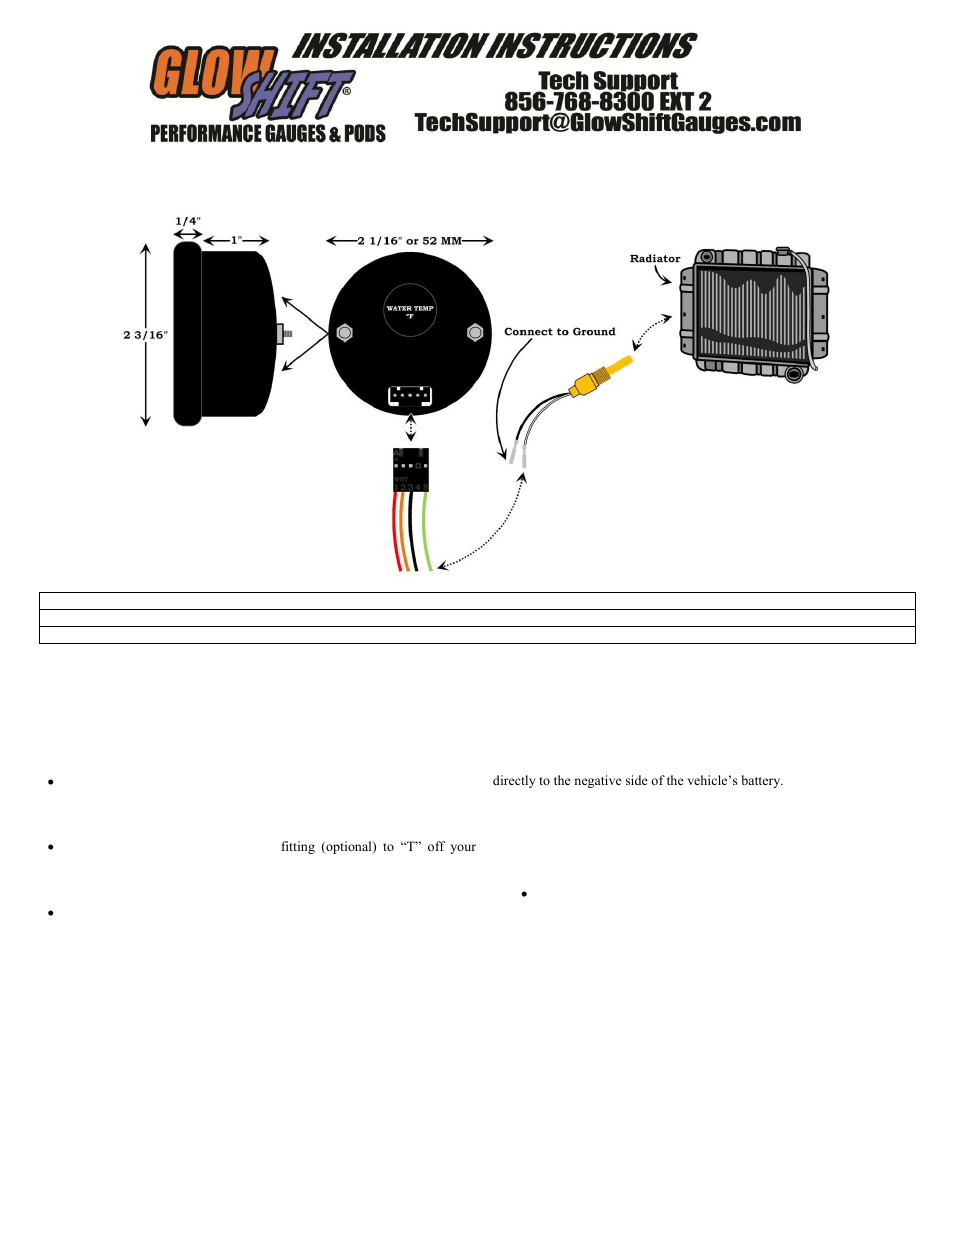 [WRG-6653] Glowshift Wire Diagram